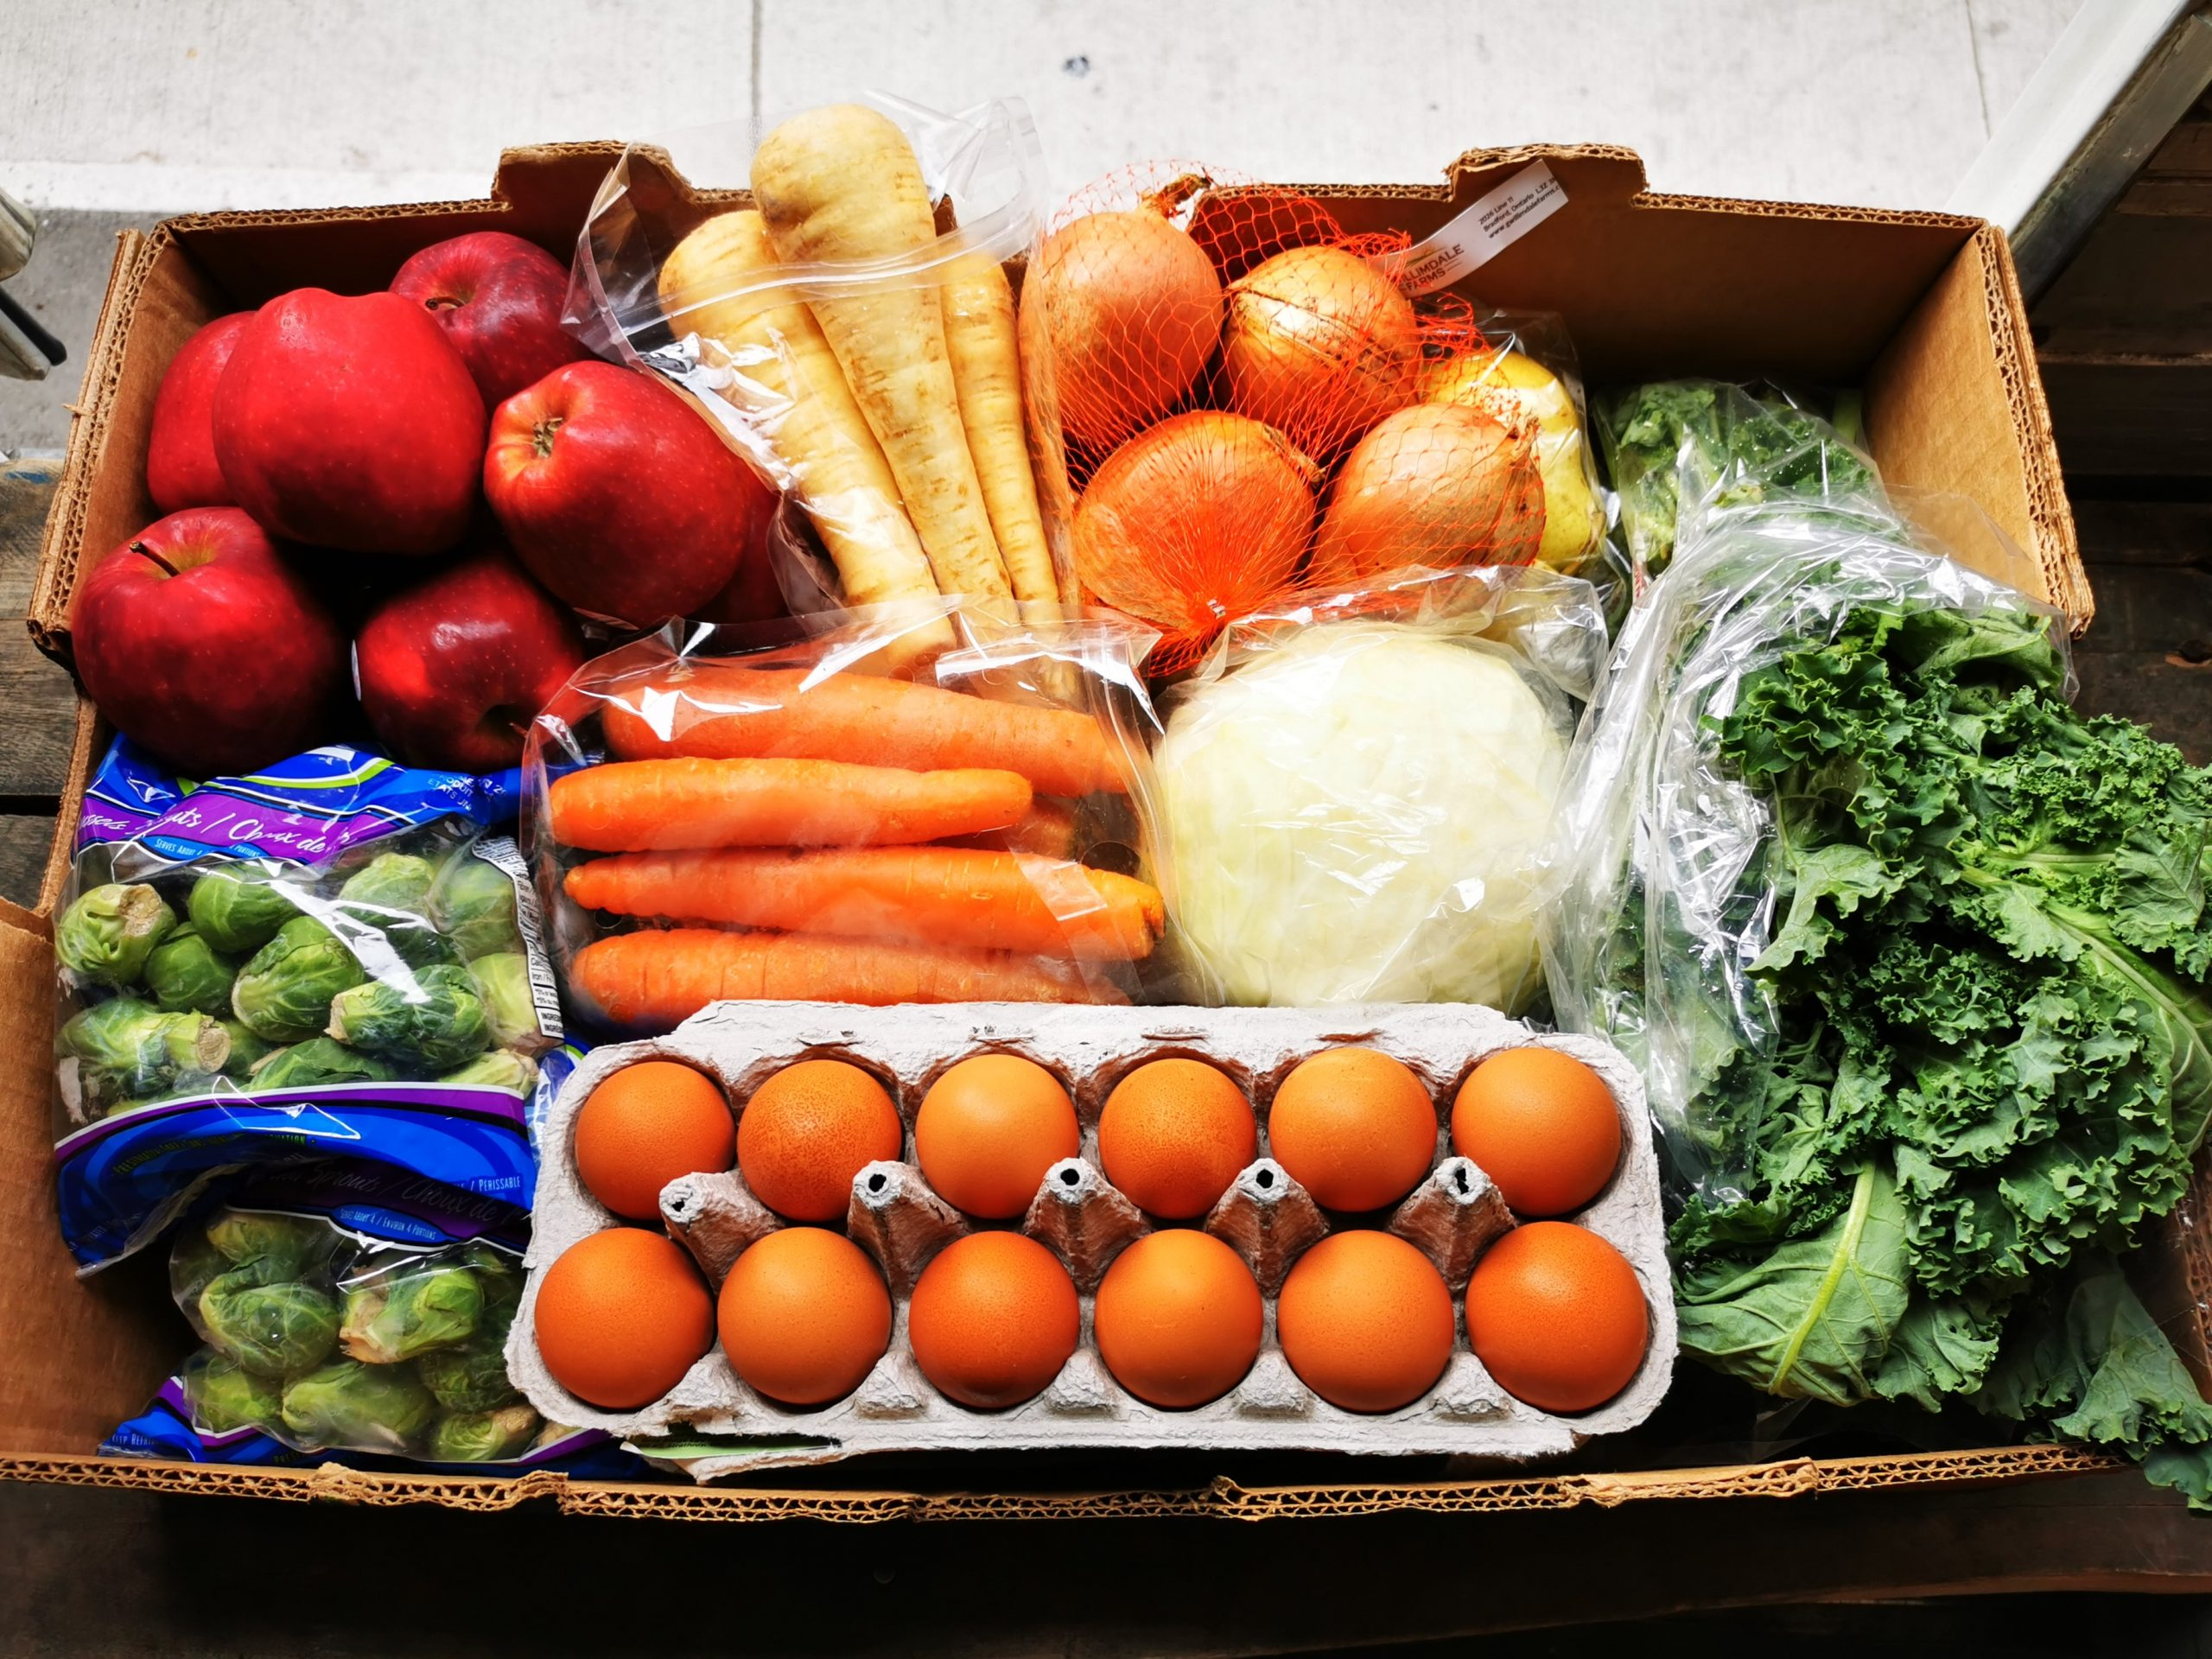 Food waste education starts here